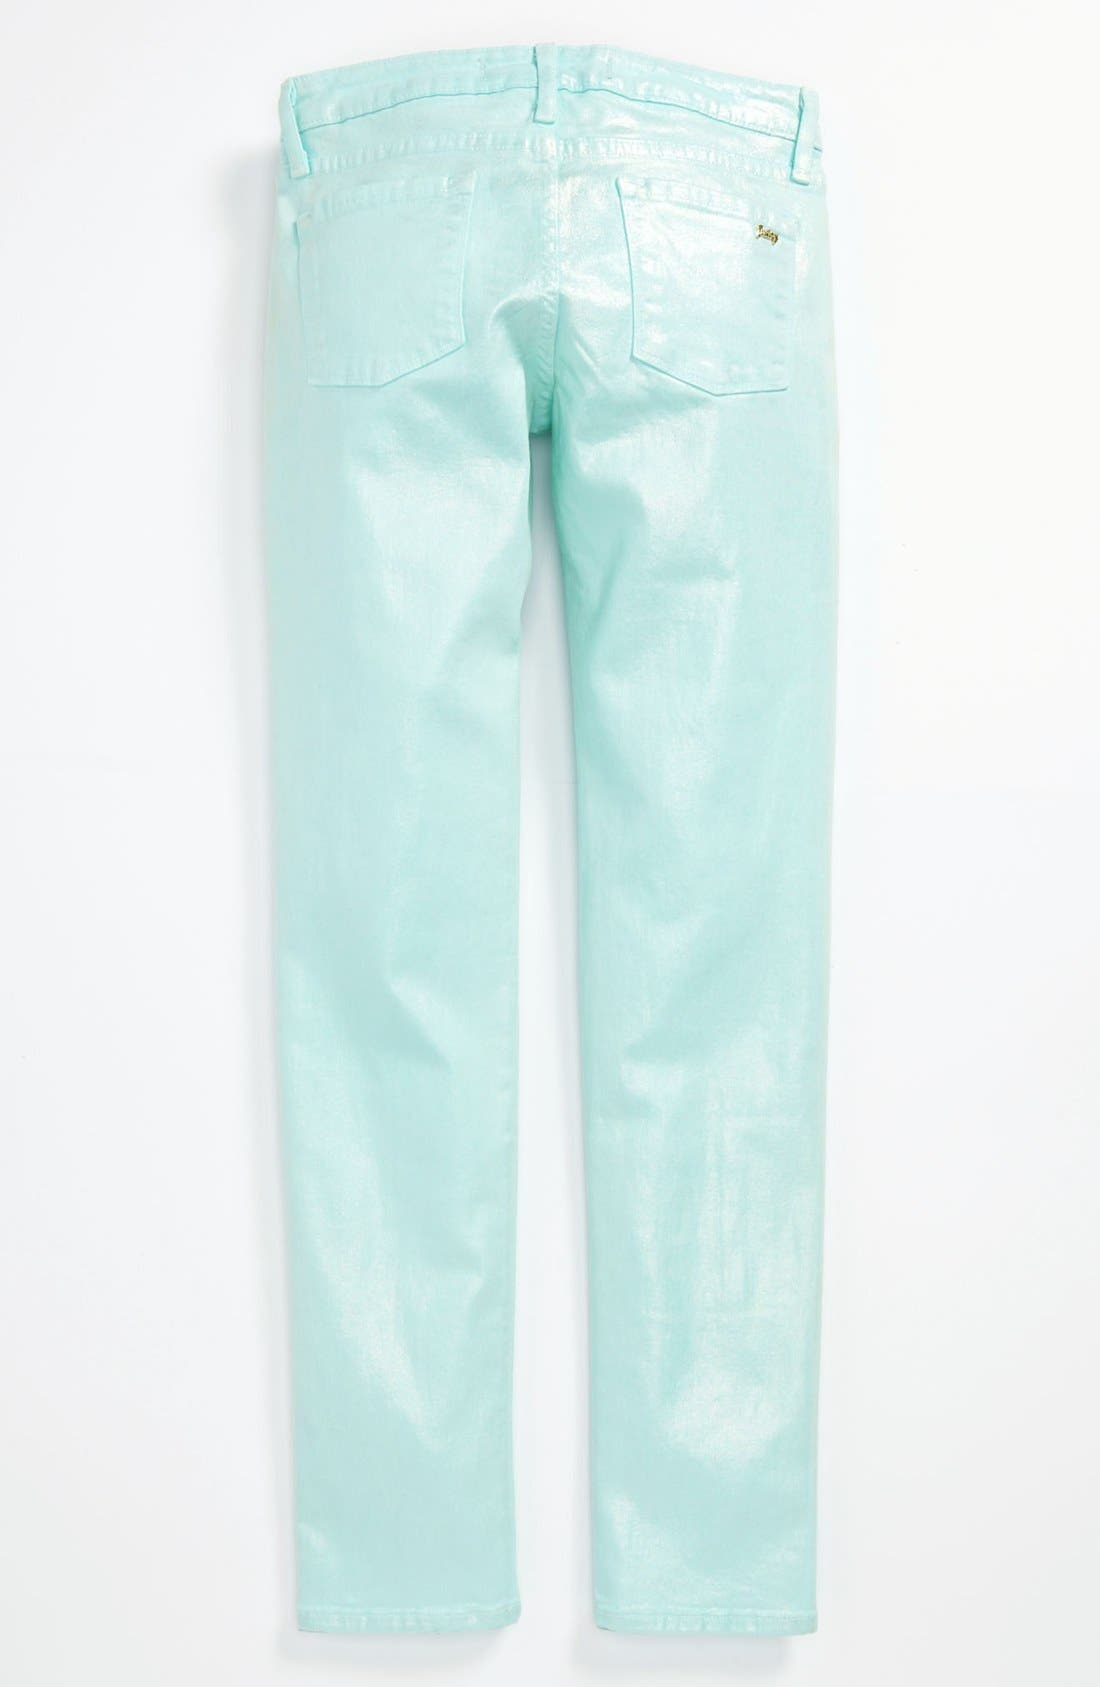 Alternate Image 1 Selected - Juicy Couture 'Moonstone Foil' Skinny Jeans (Little Girls & Big Girls)